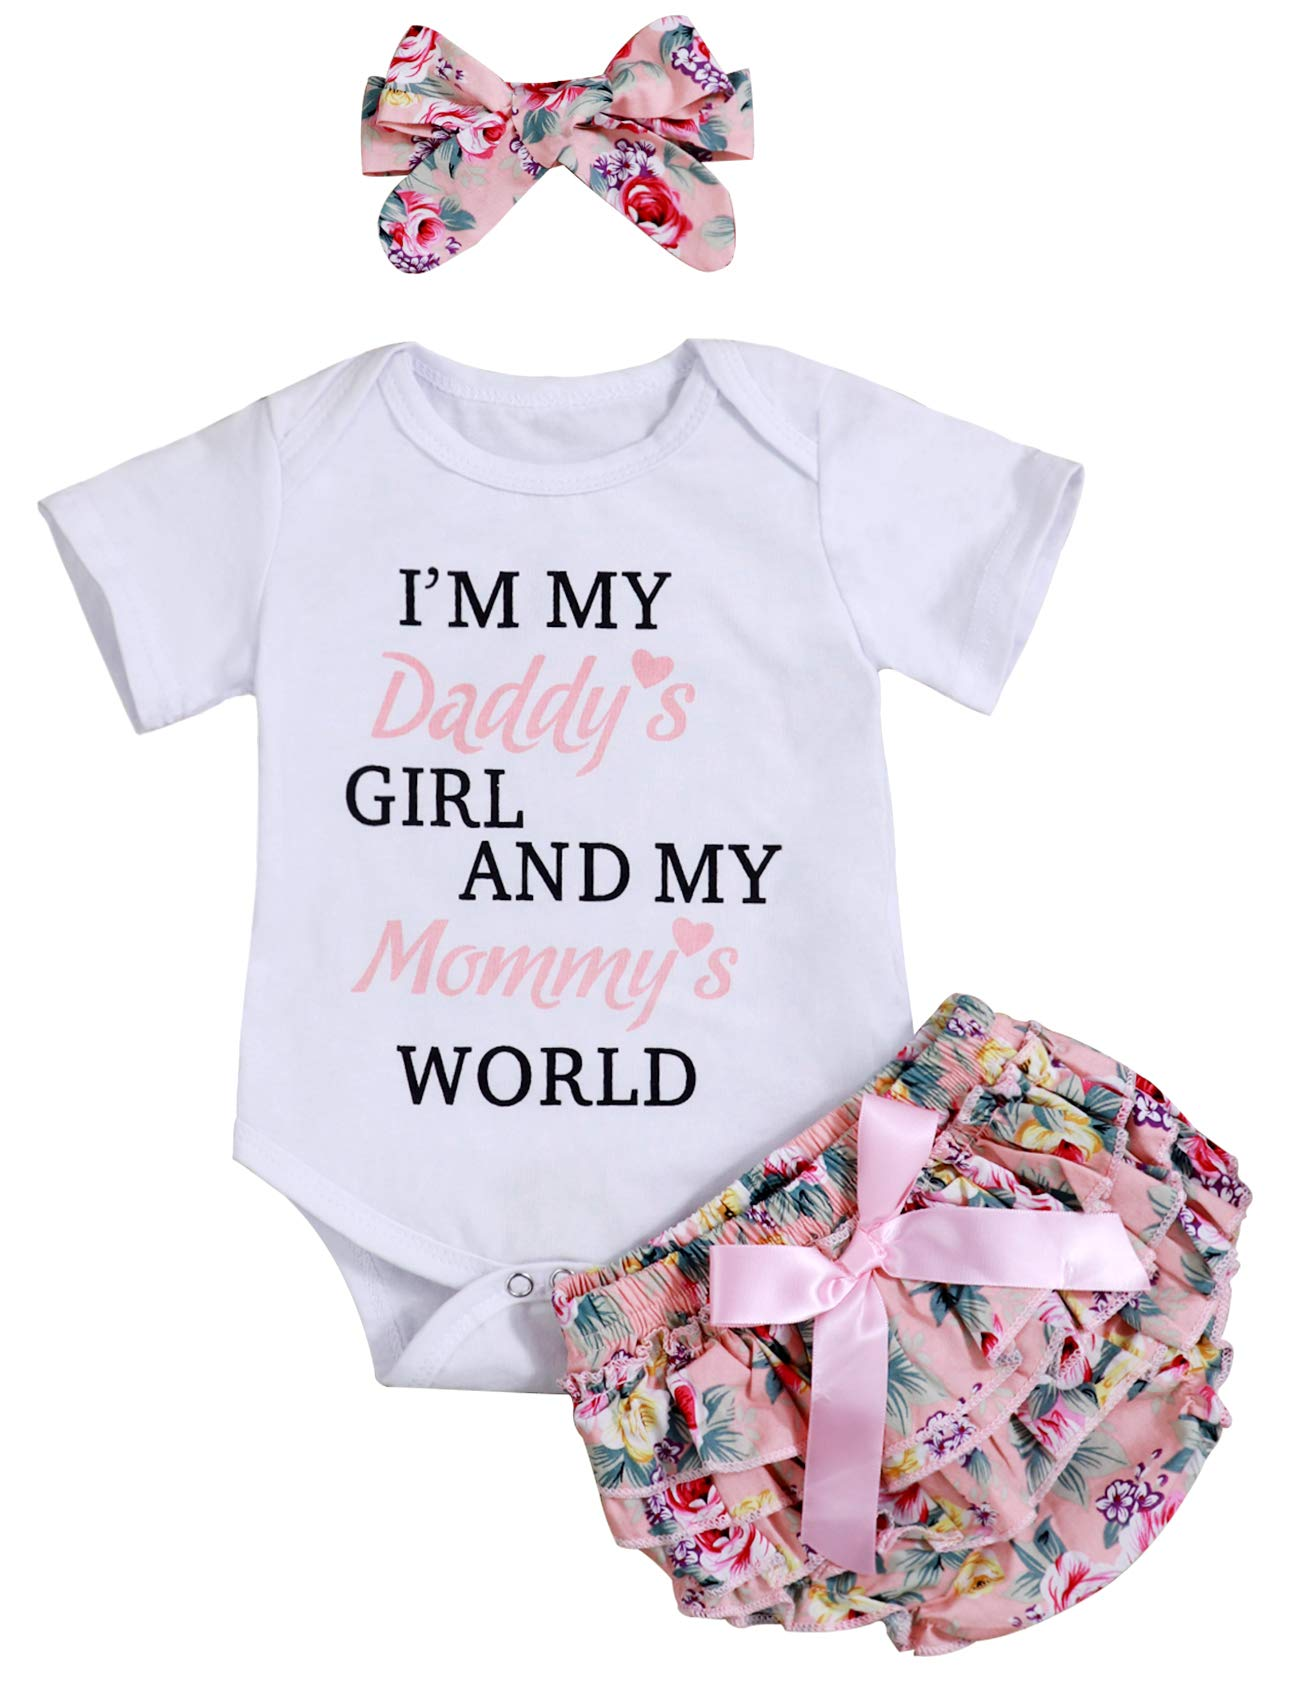 Newborn Baby Girl Summer Clothes Daddys Princess Romper Floral Shorts with Headband Bodysuit Outfit Sets